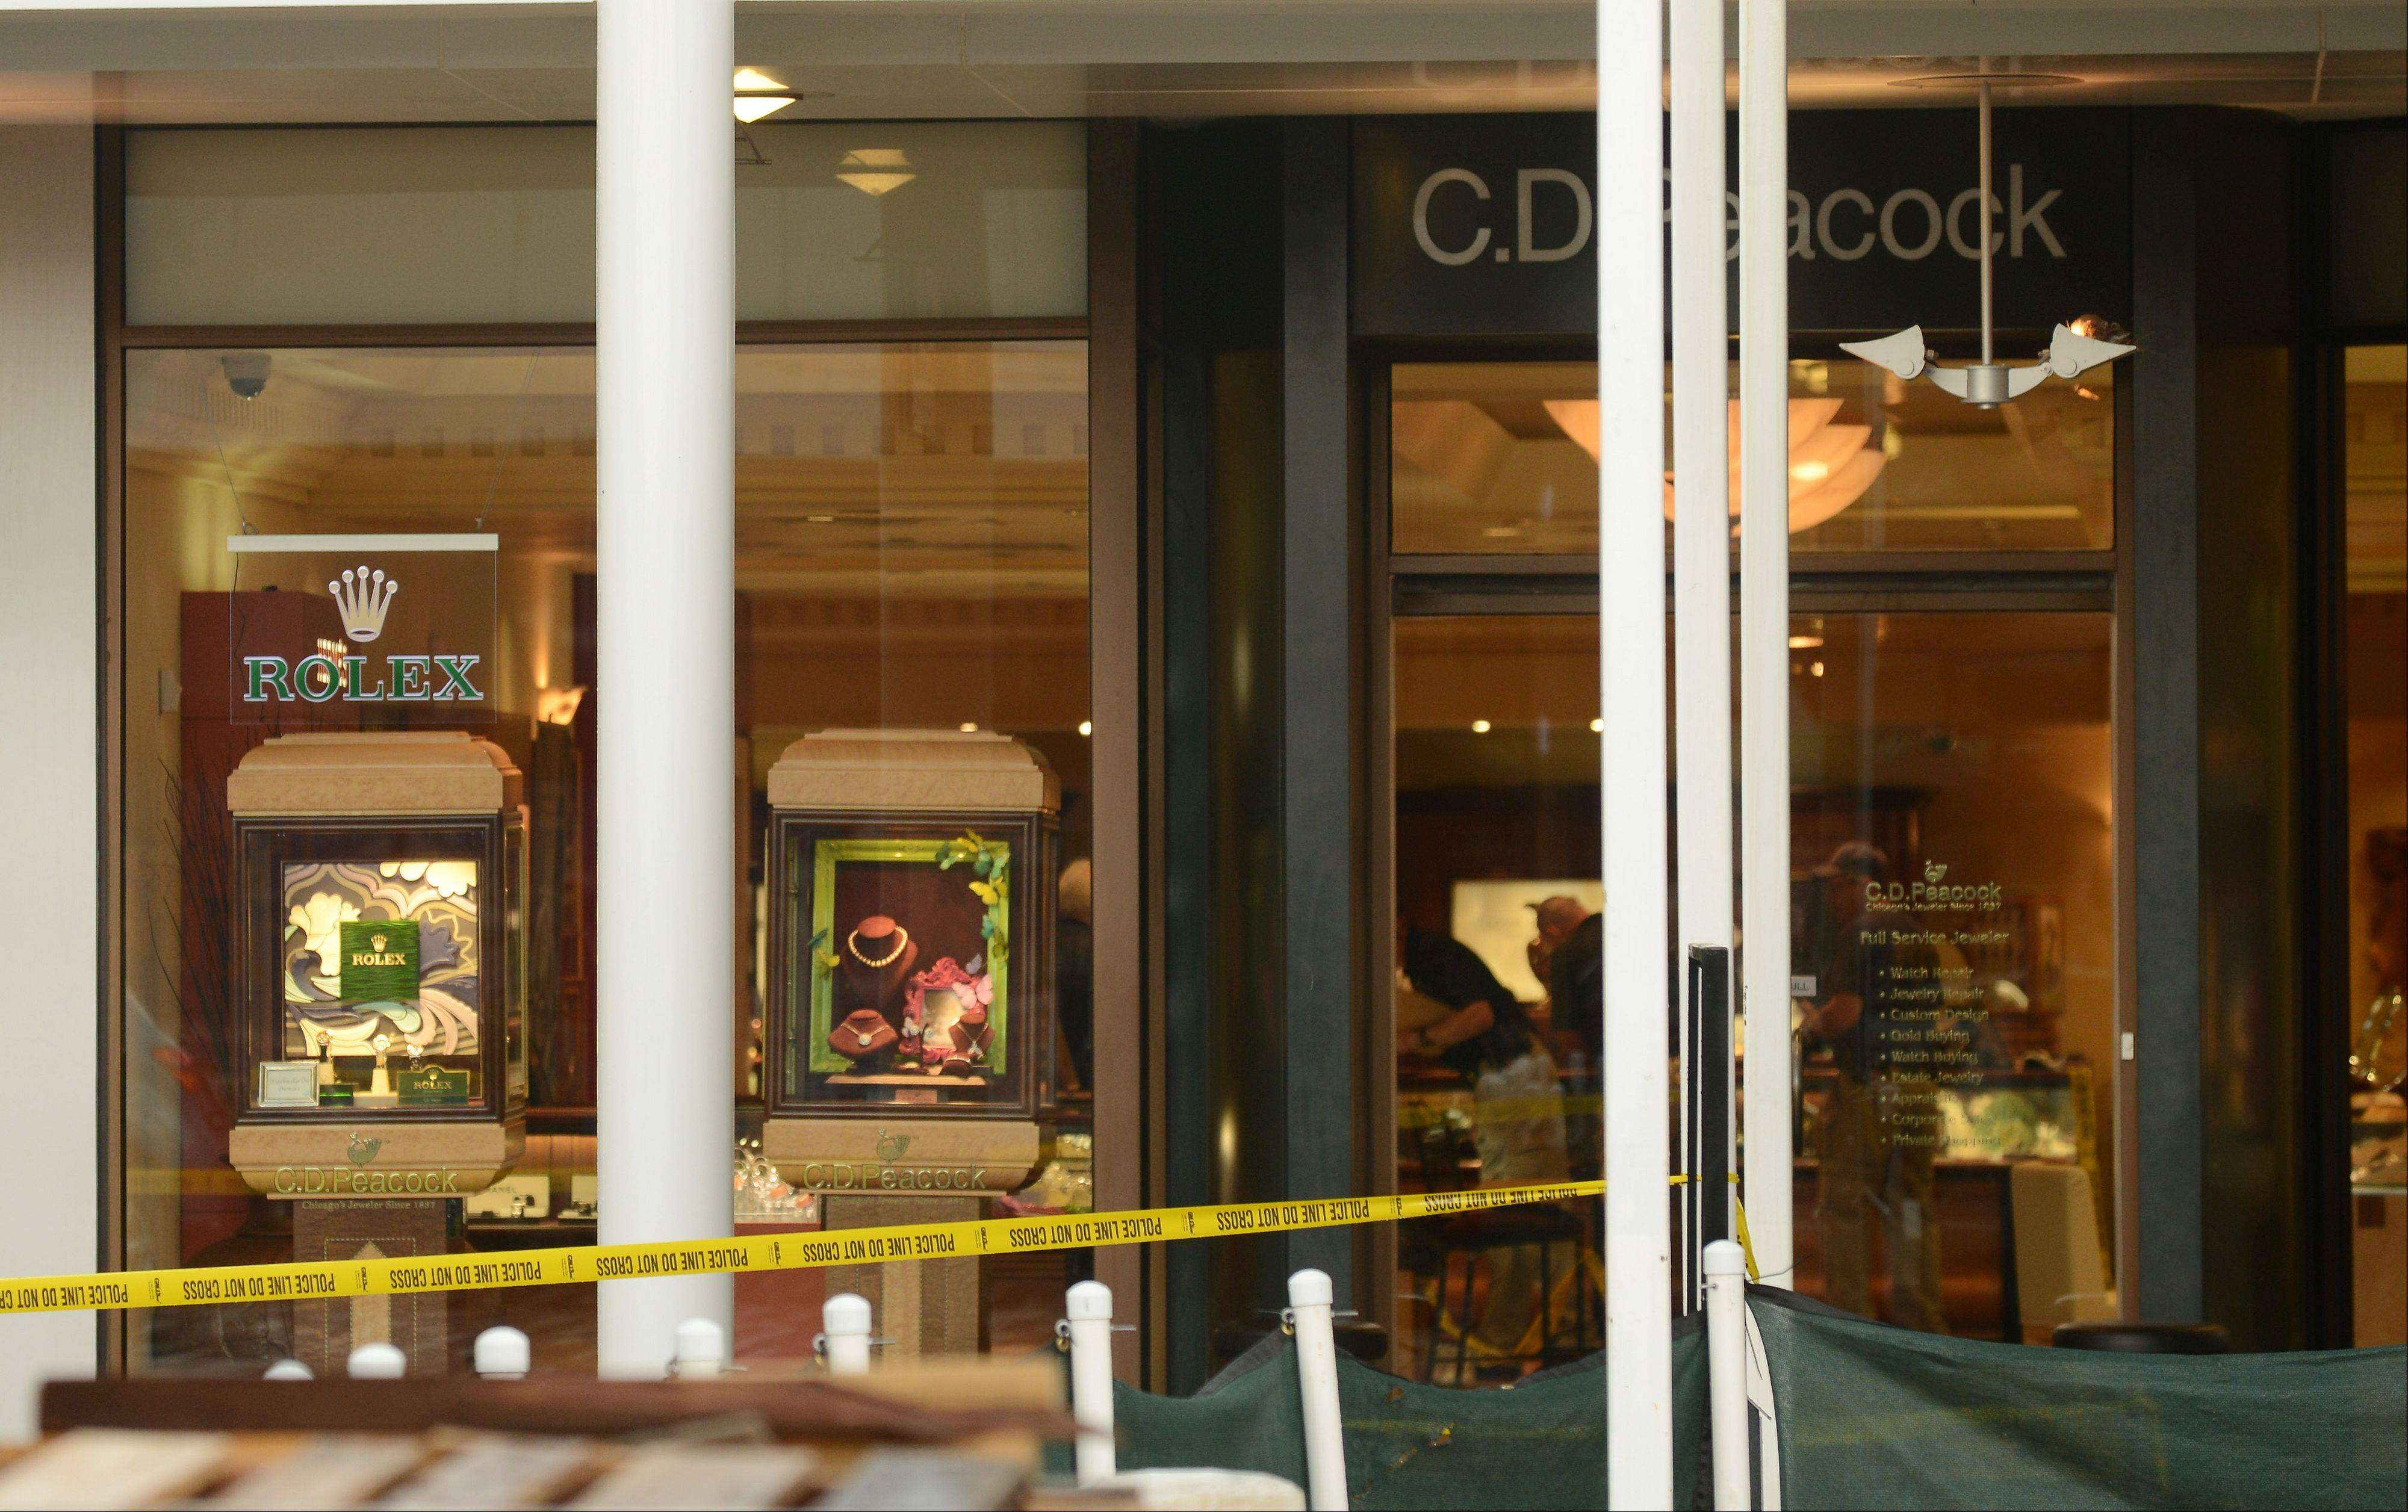 Police tape surrounds the entrance to the C.D. Peacock jewelry store at Oakbrook Center mall Sunday after gunfire erupted during a robbery attempt.